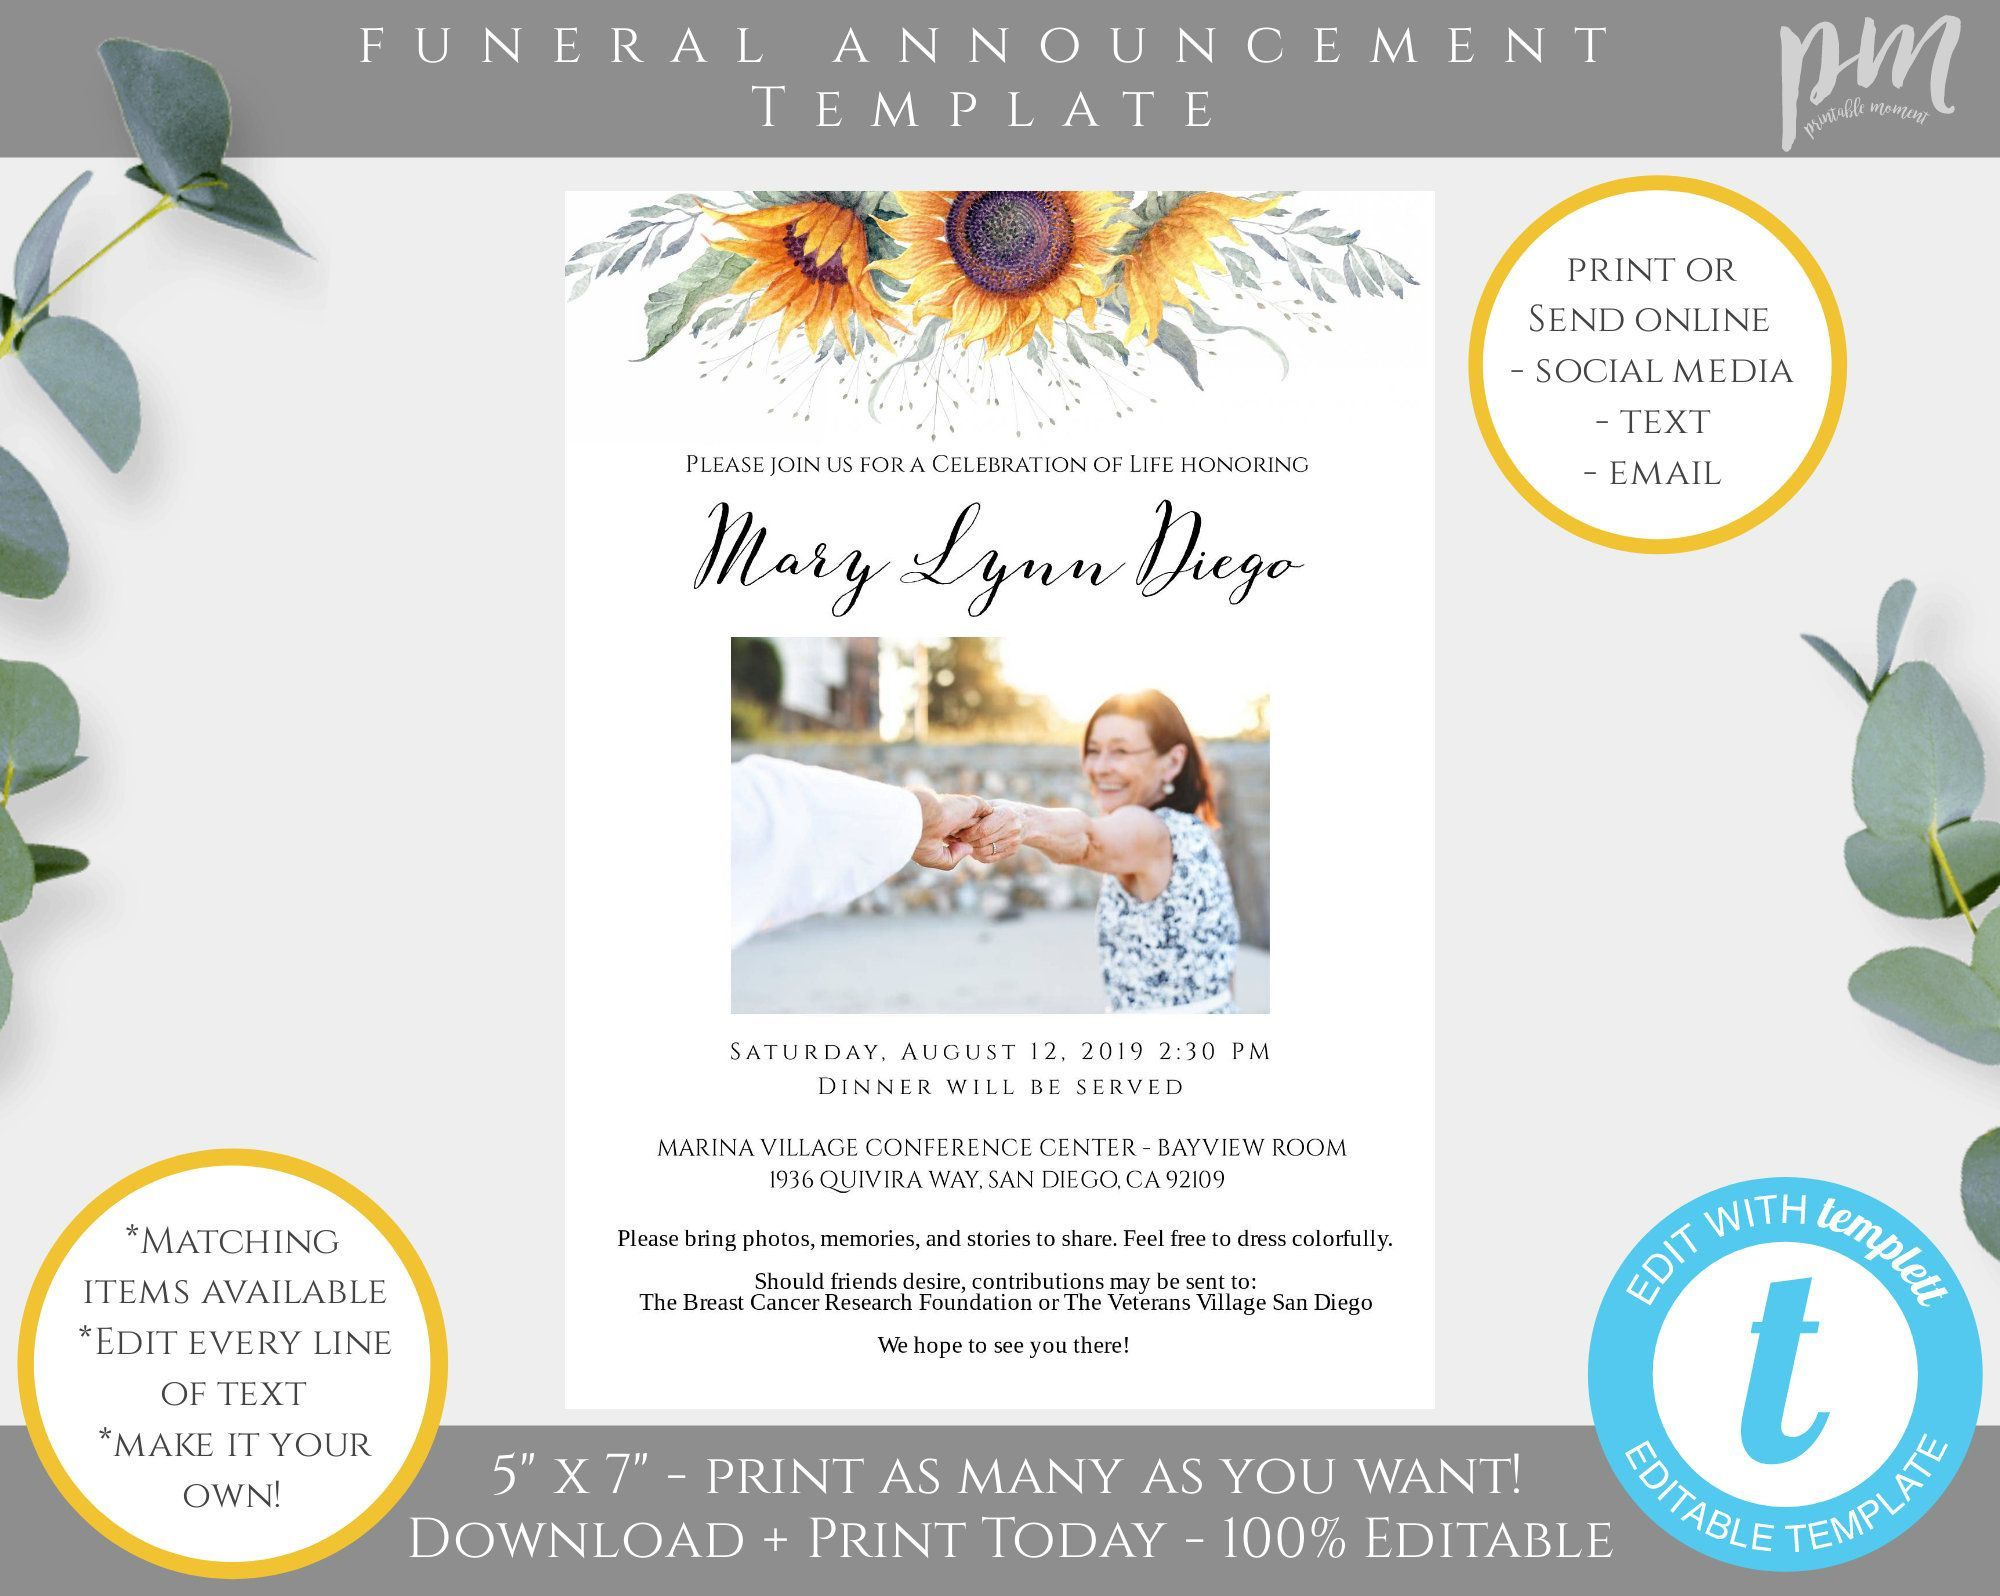 002 Remarkable Celebration Of Life Template Free Download Inspiration  InvitationFull